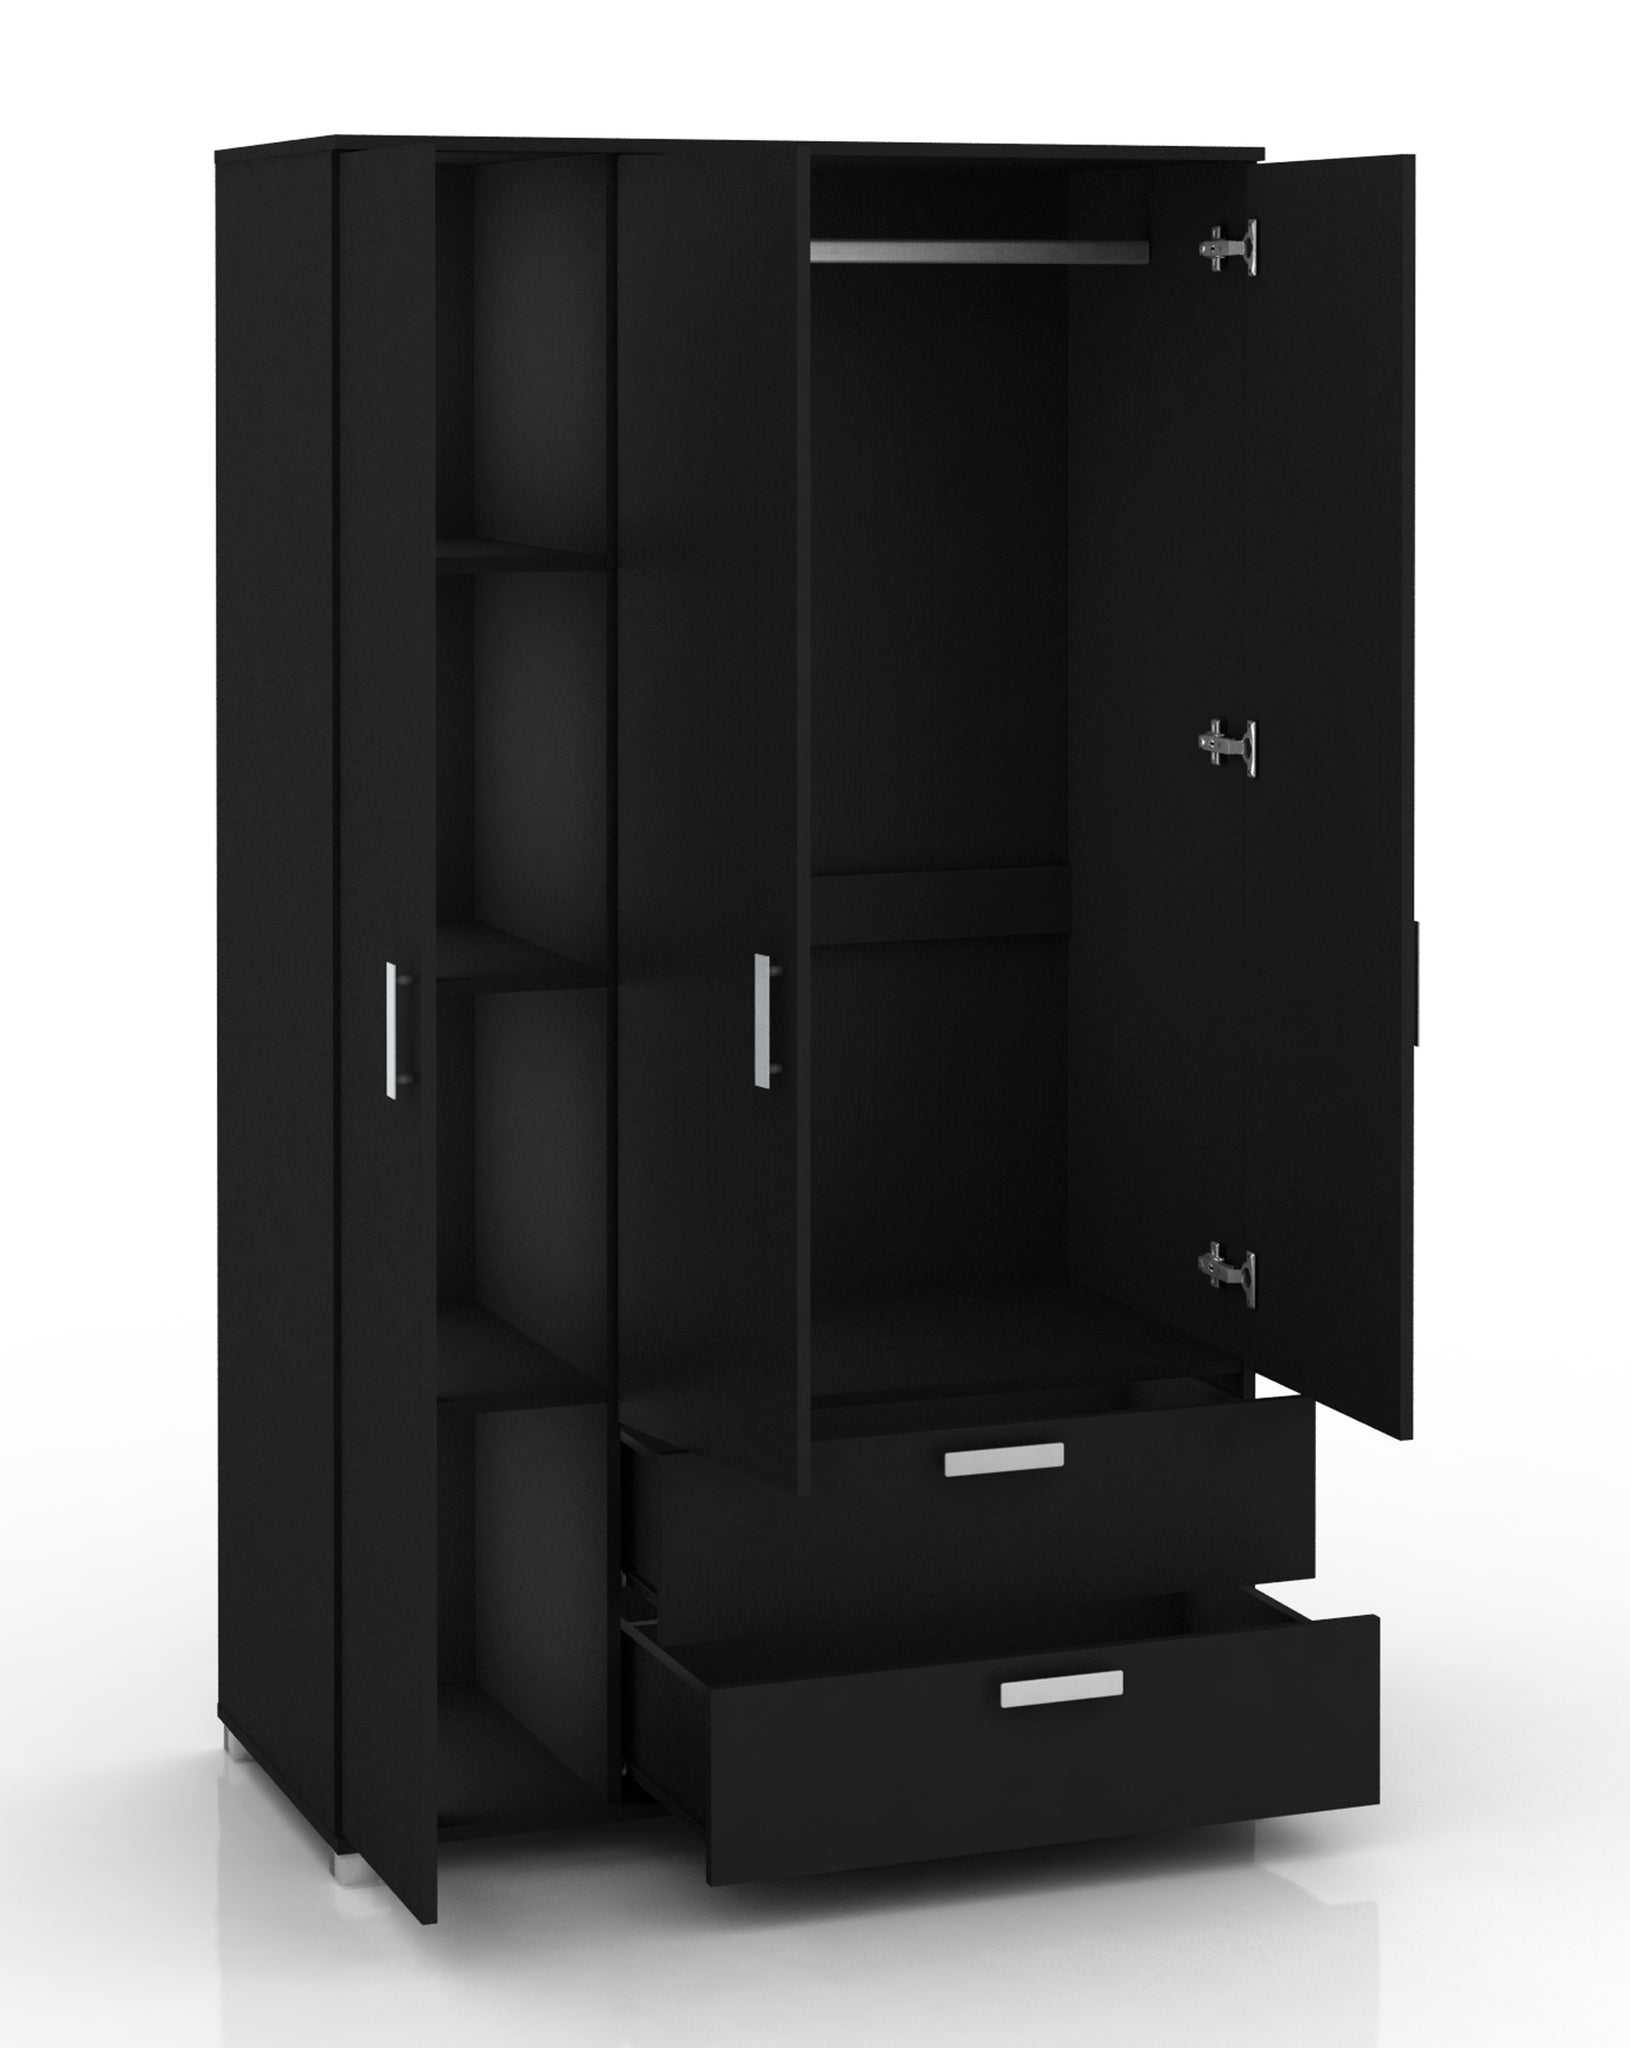 Polo 3 Door & 2 Drawer Wardrobe - Free Standing